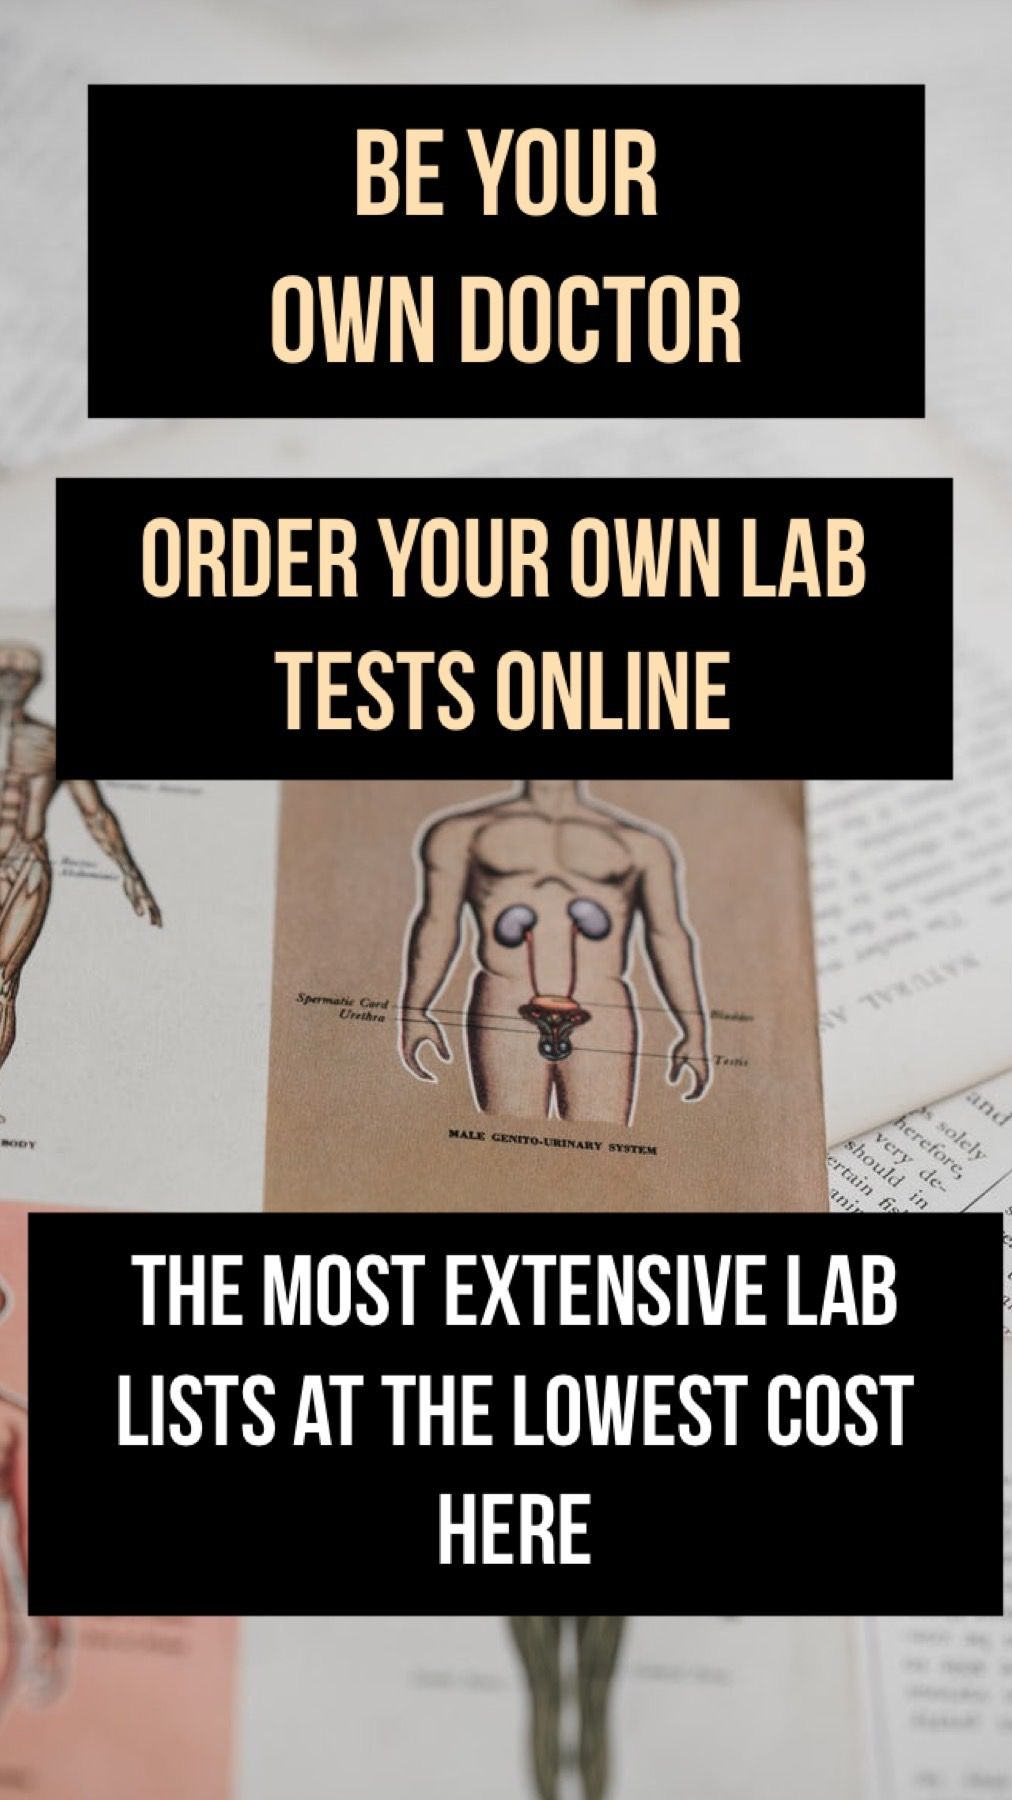 A lab tech explains the benefits of ordering lab tests